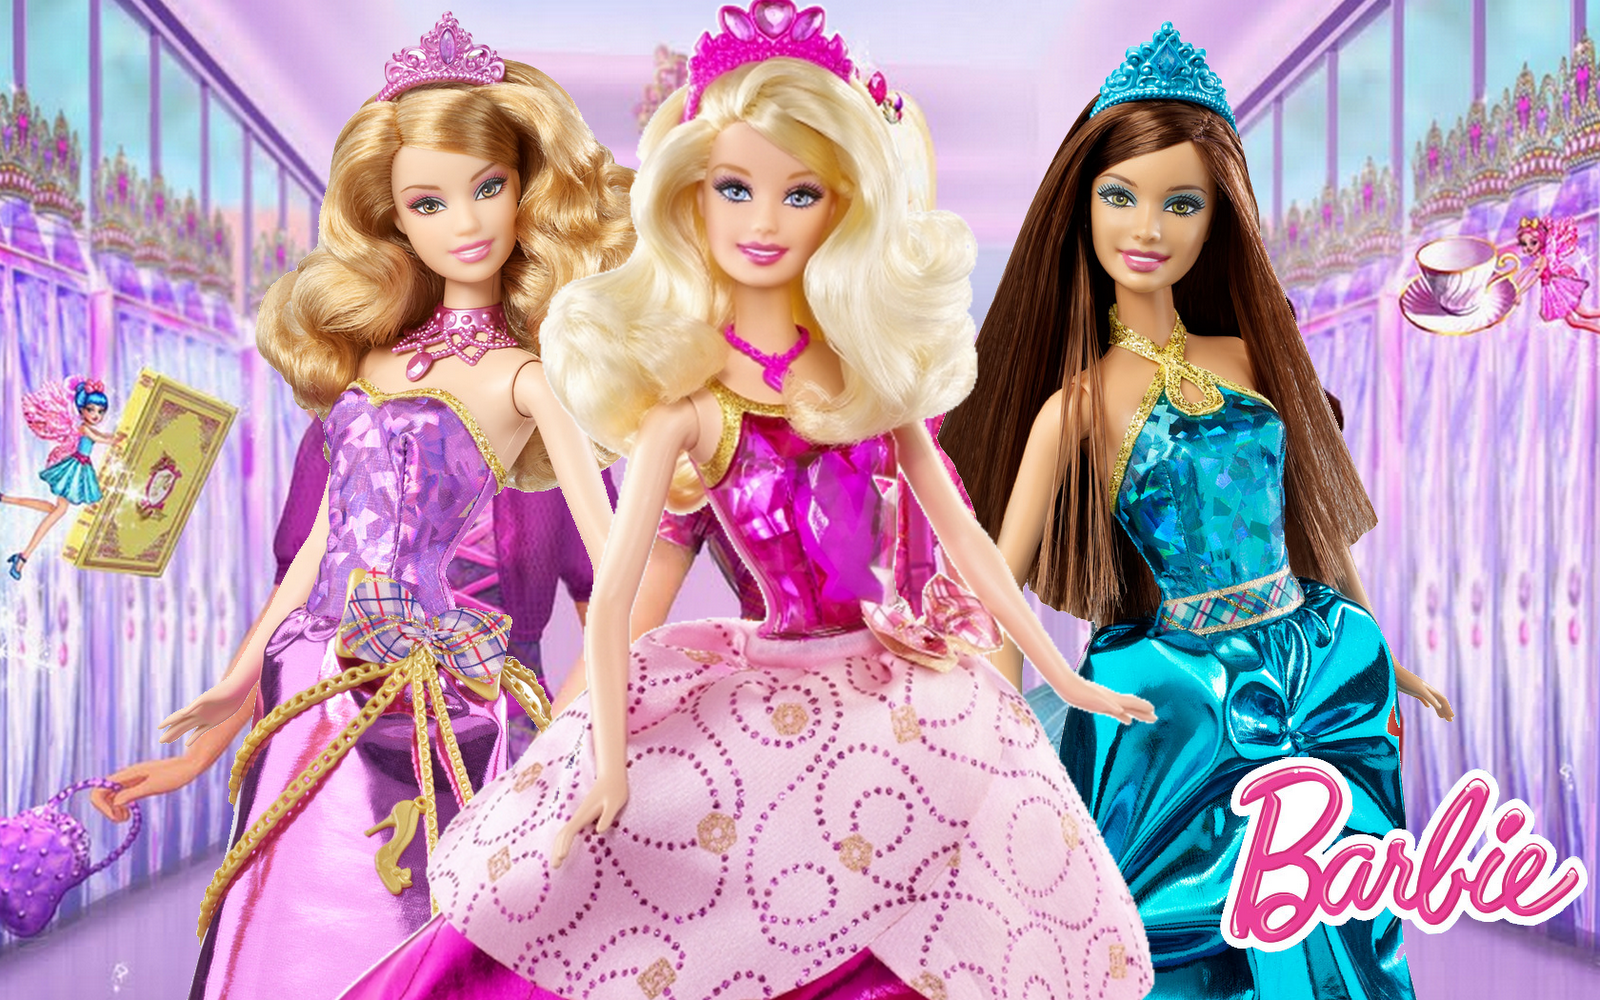 Barbie Wallpapers Desktop Wallpaper Hungama 1600x1000